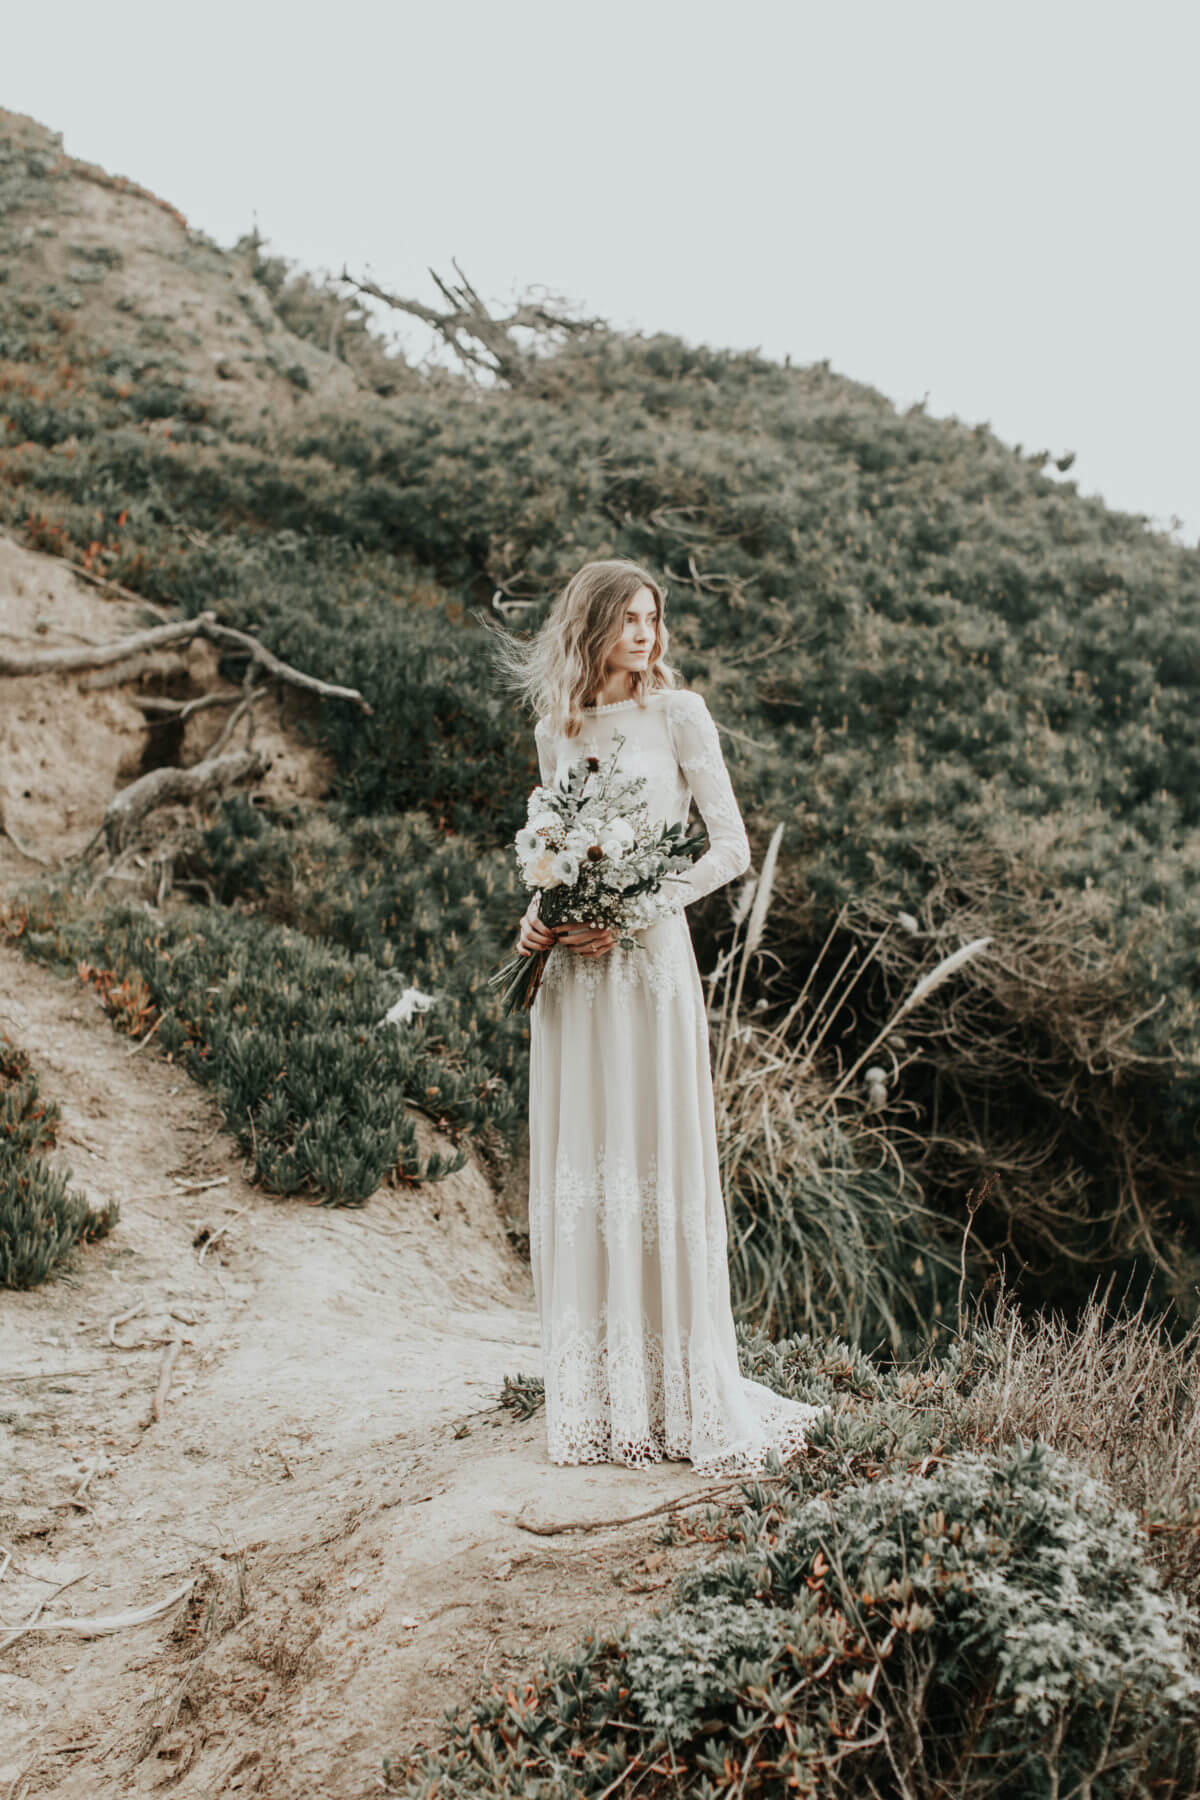 boho-bride-nelli-wearing-lisa-long-sleeve-wedding-dress-photographed-by-the-california-coast